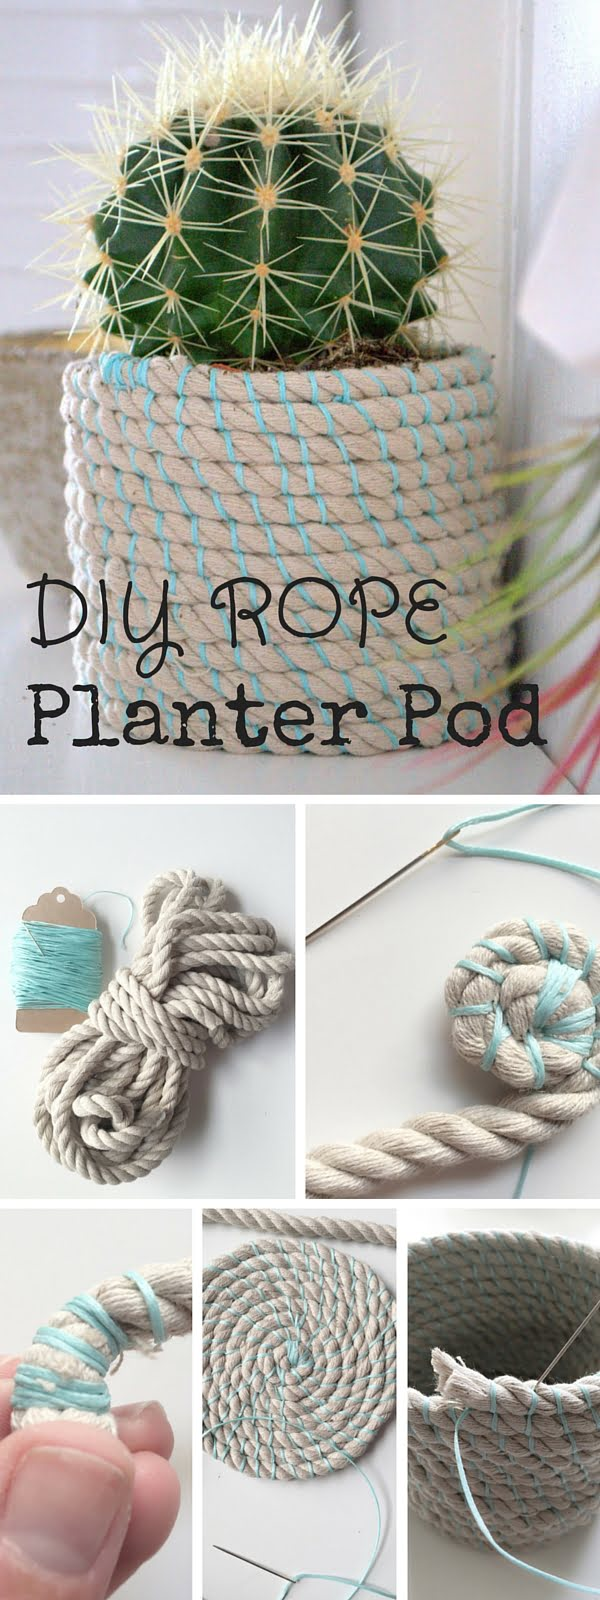 Check out the tutorial: #DIY Rope Pod #crafts #homedecor